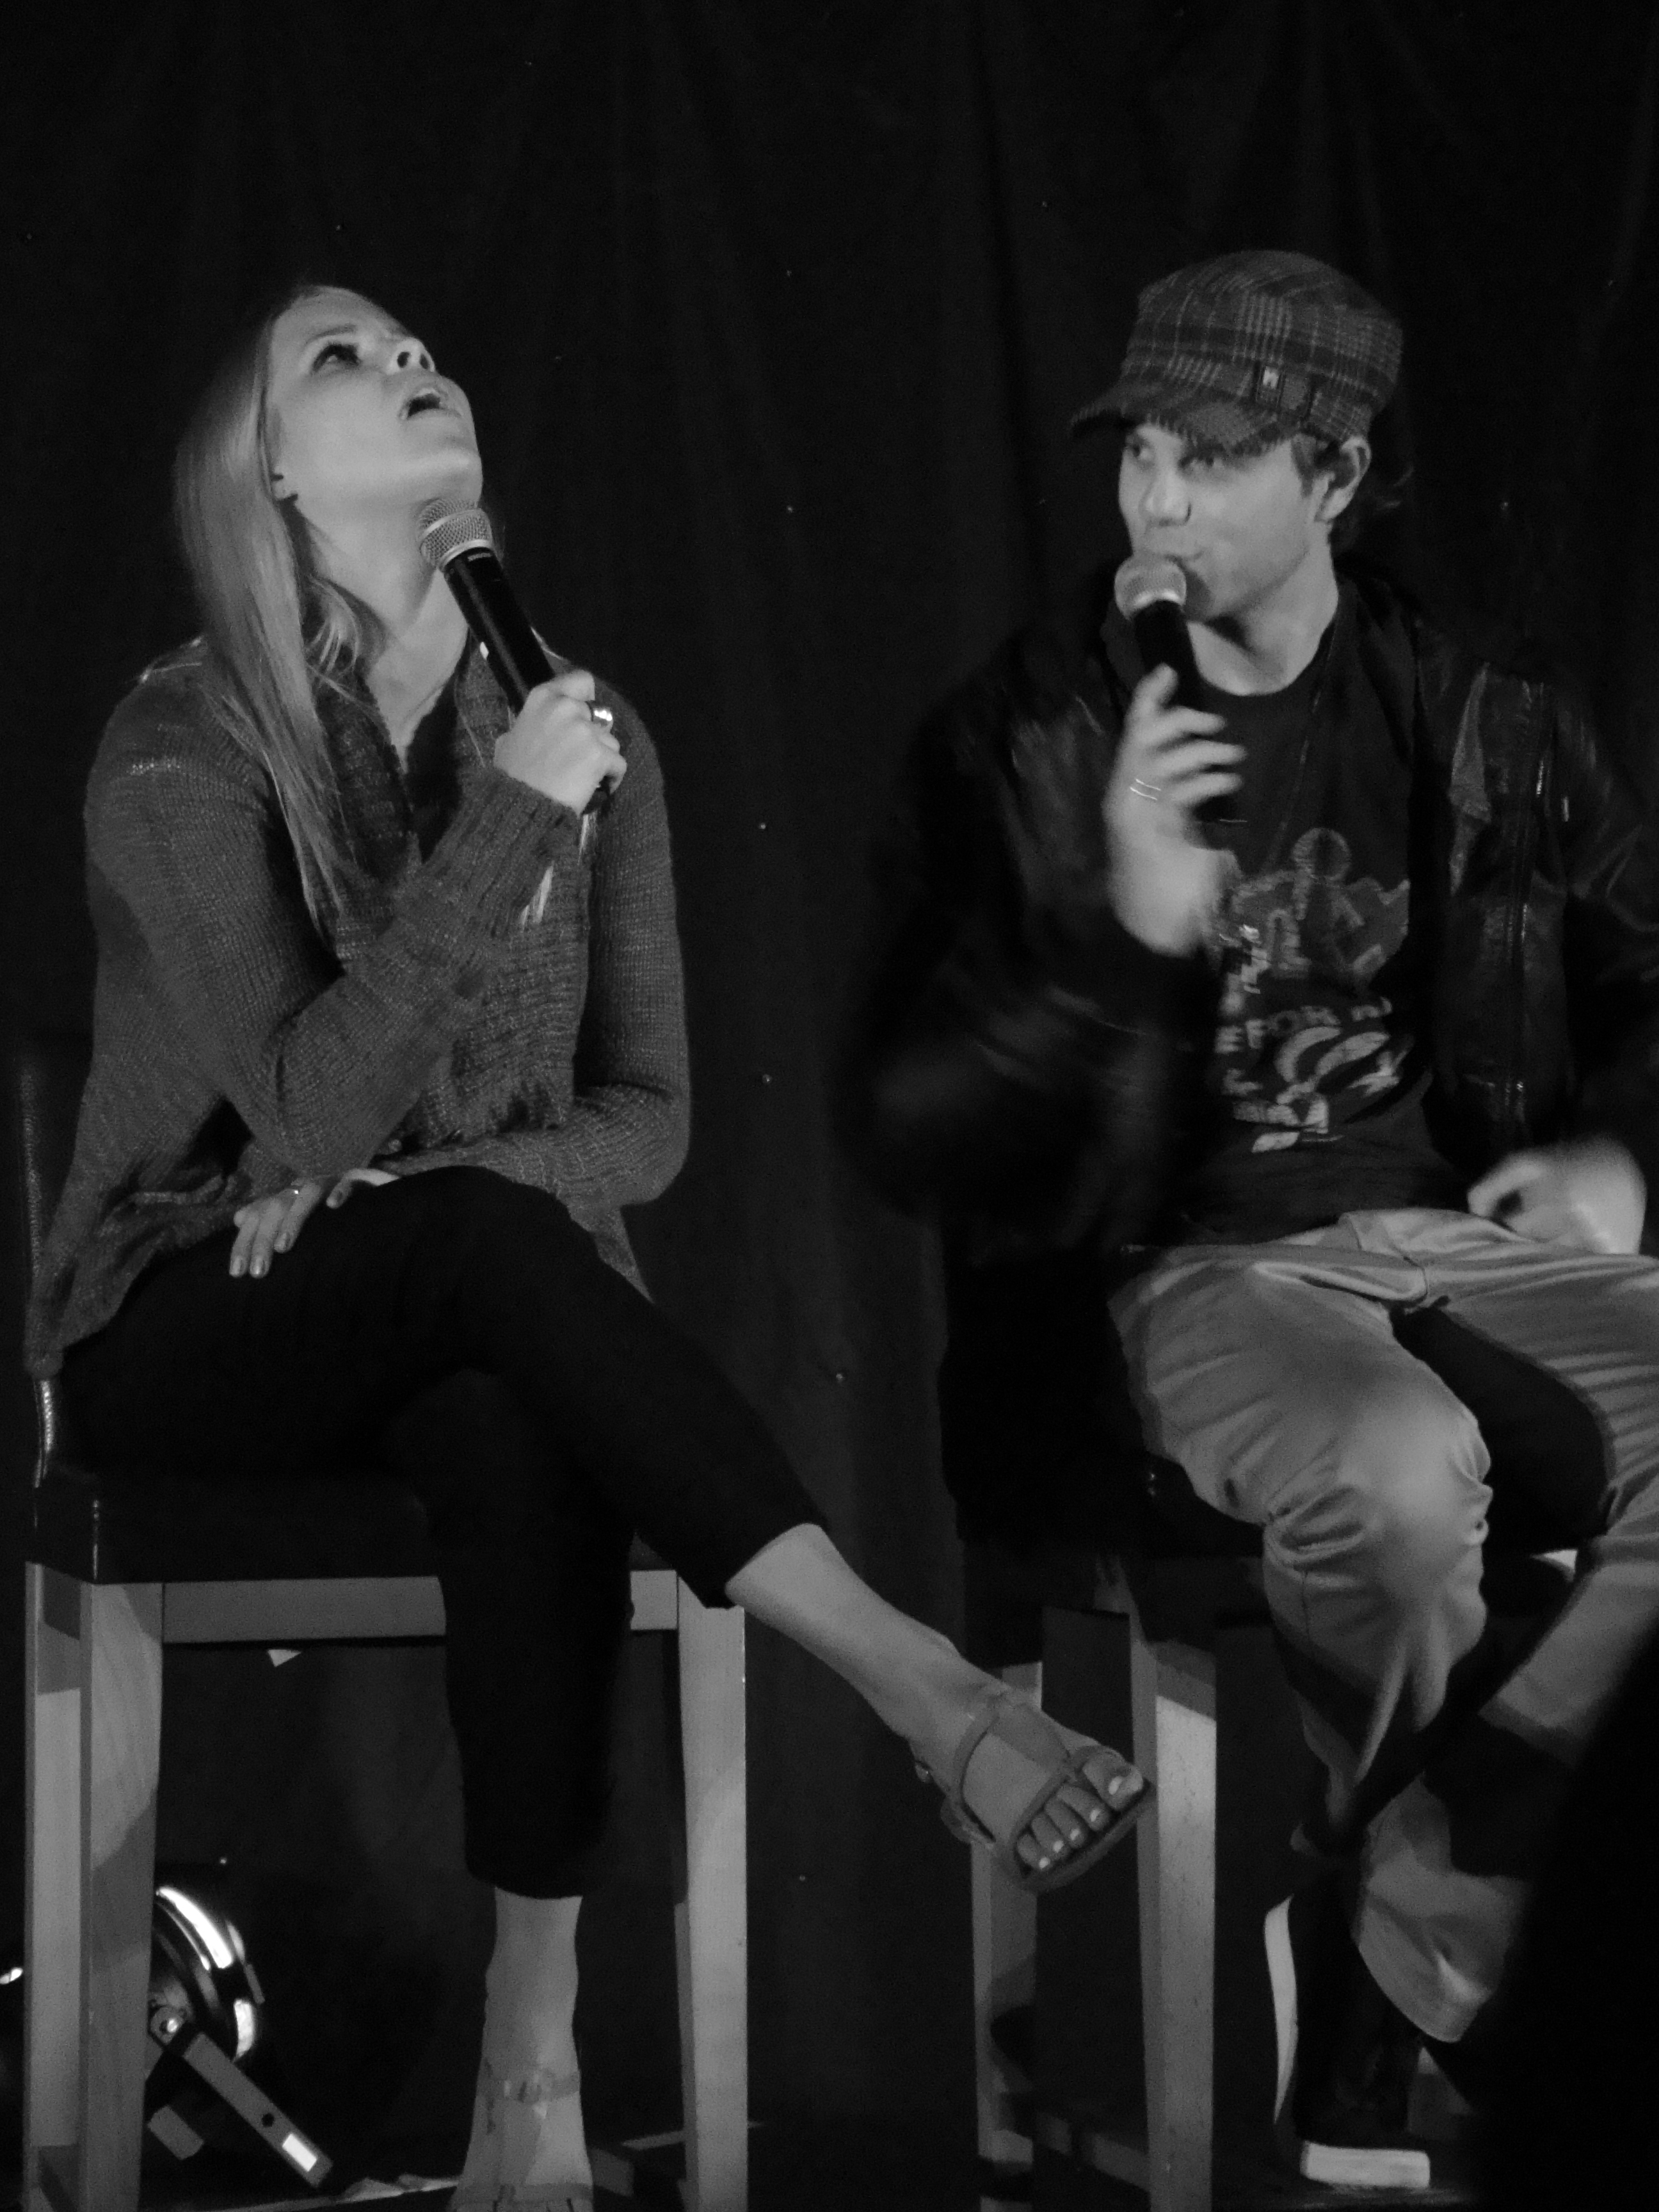 http://upload.wikimedia.org/wikipedia/commons/3/3d/Claire_Holt_%26_Nate_Buzolic_(7446160832).jpg